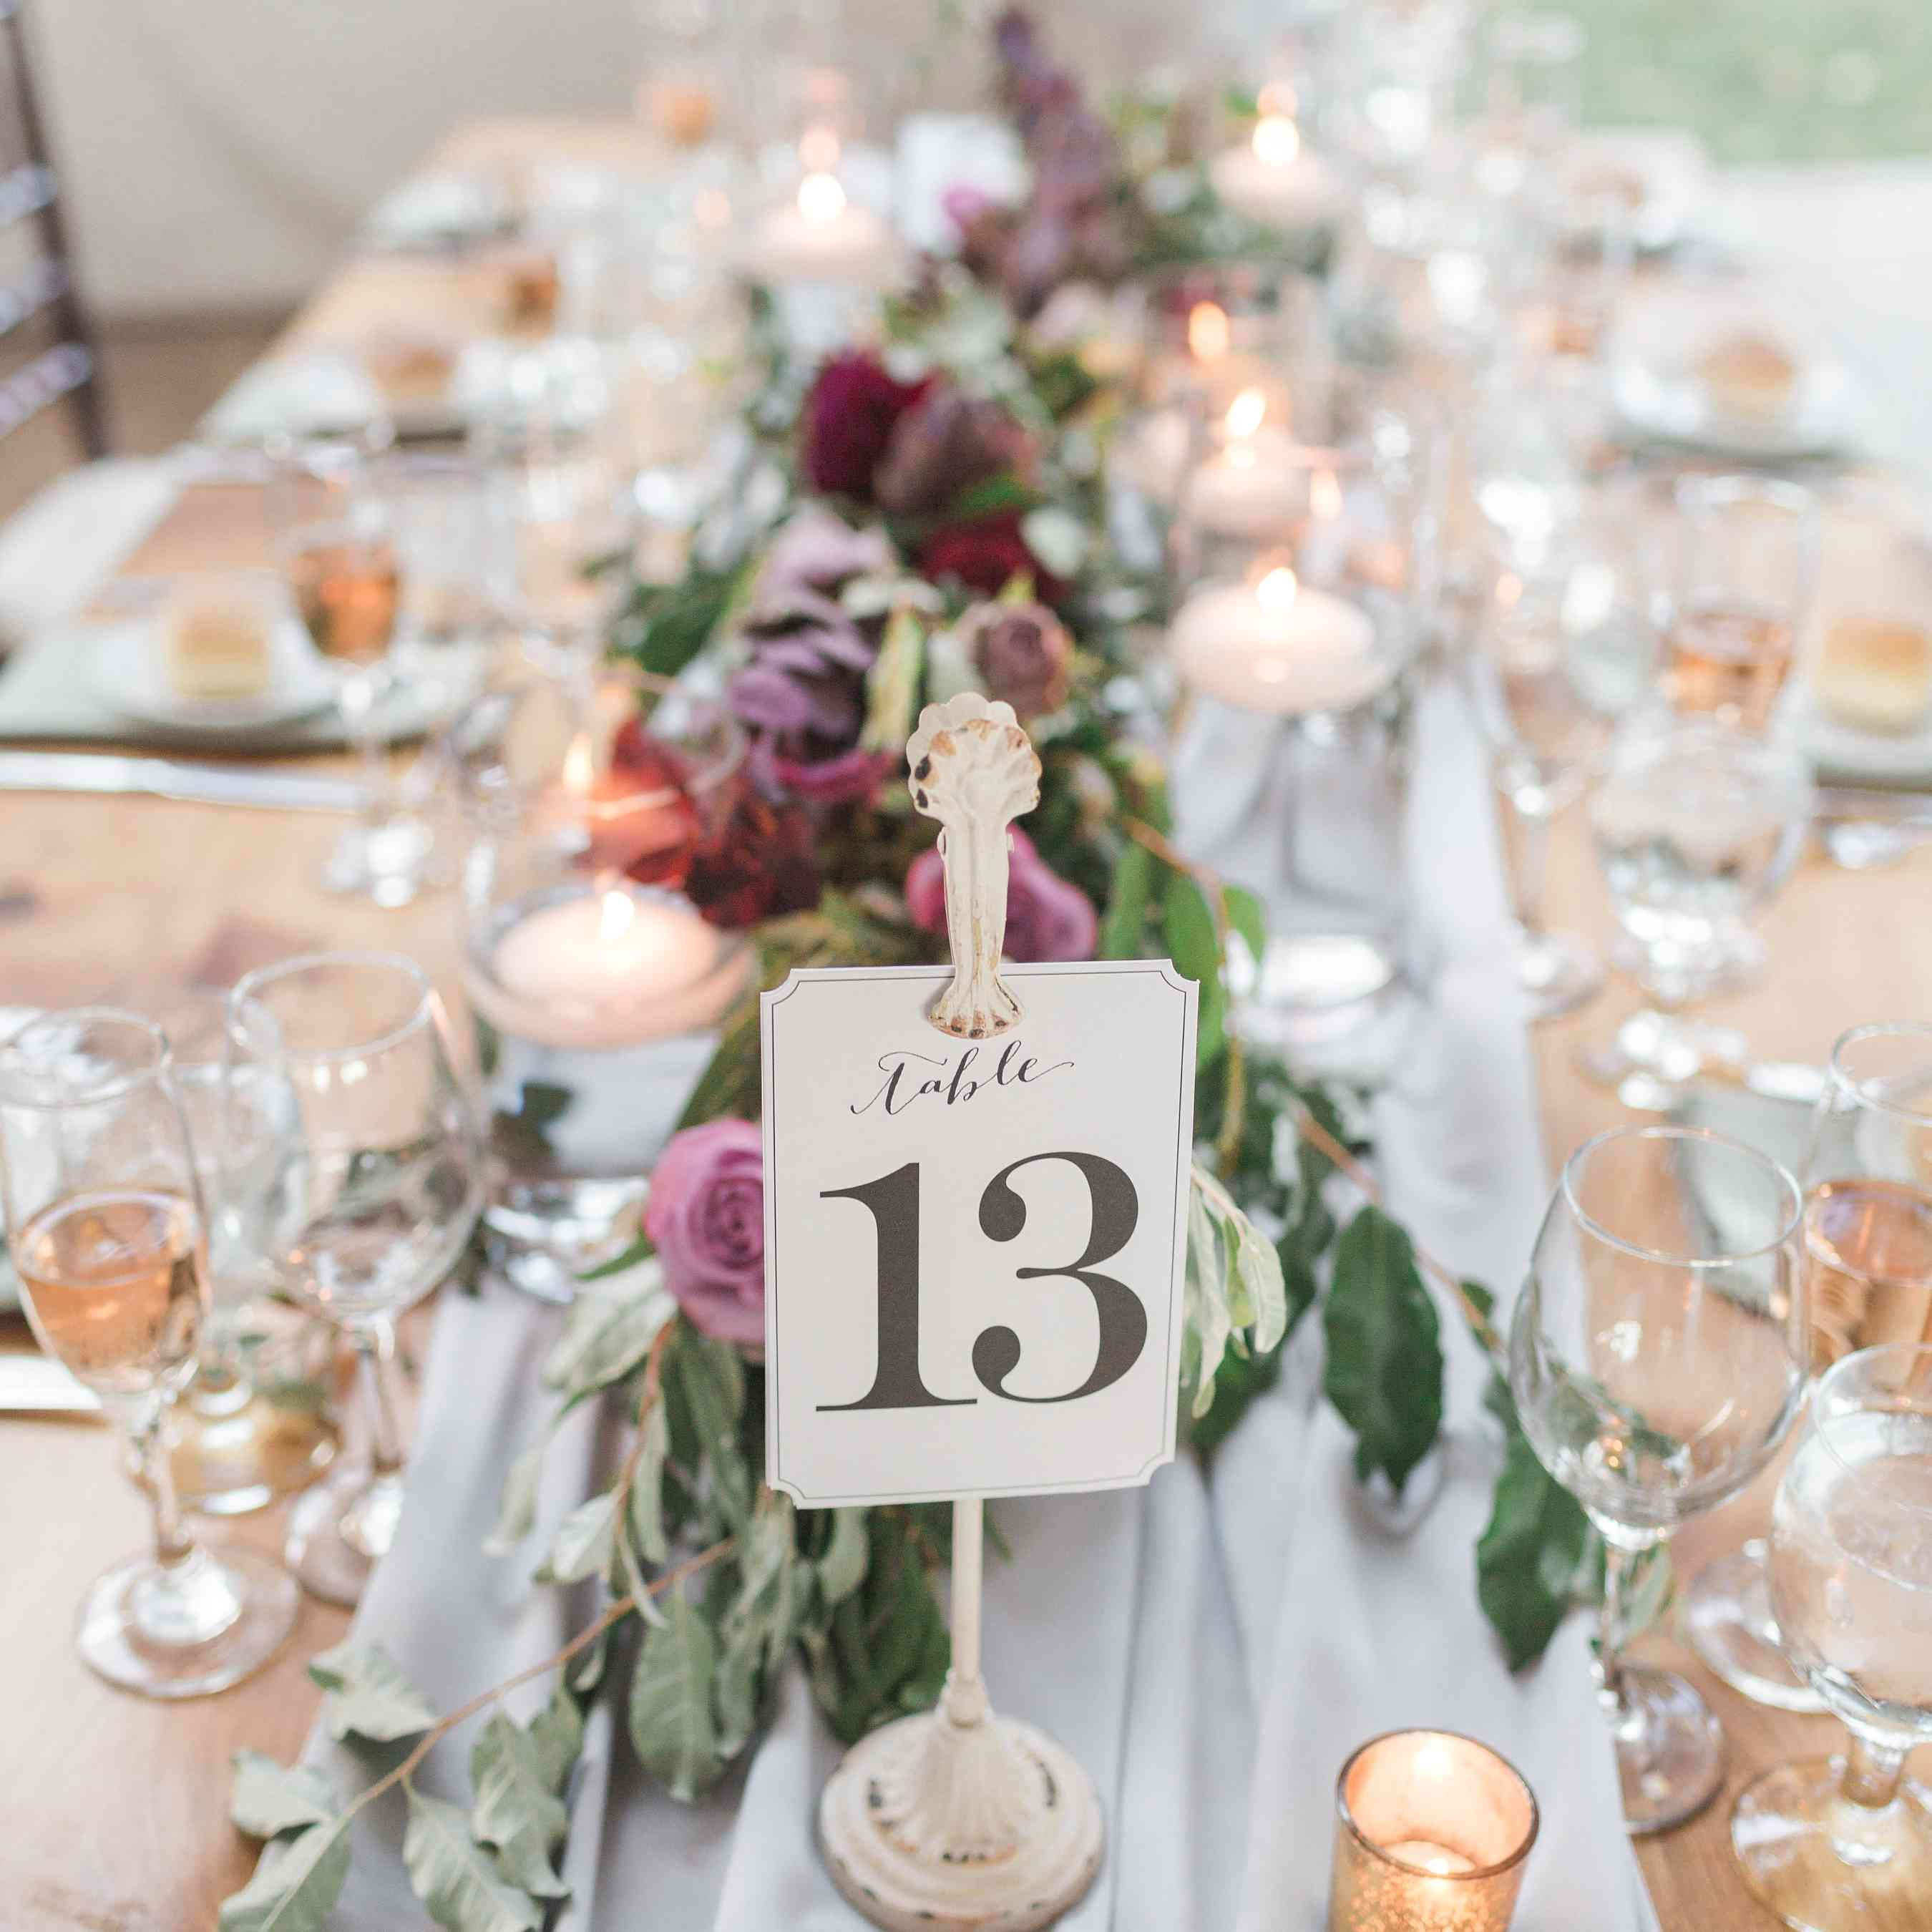 Reception Table with Table Number